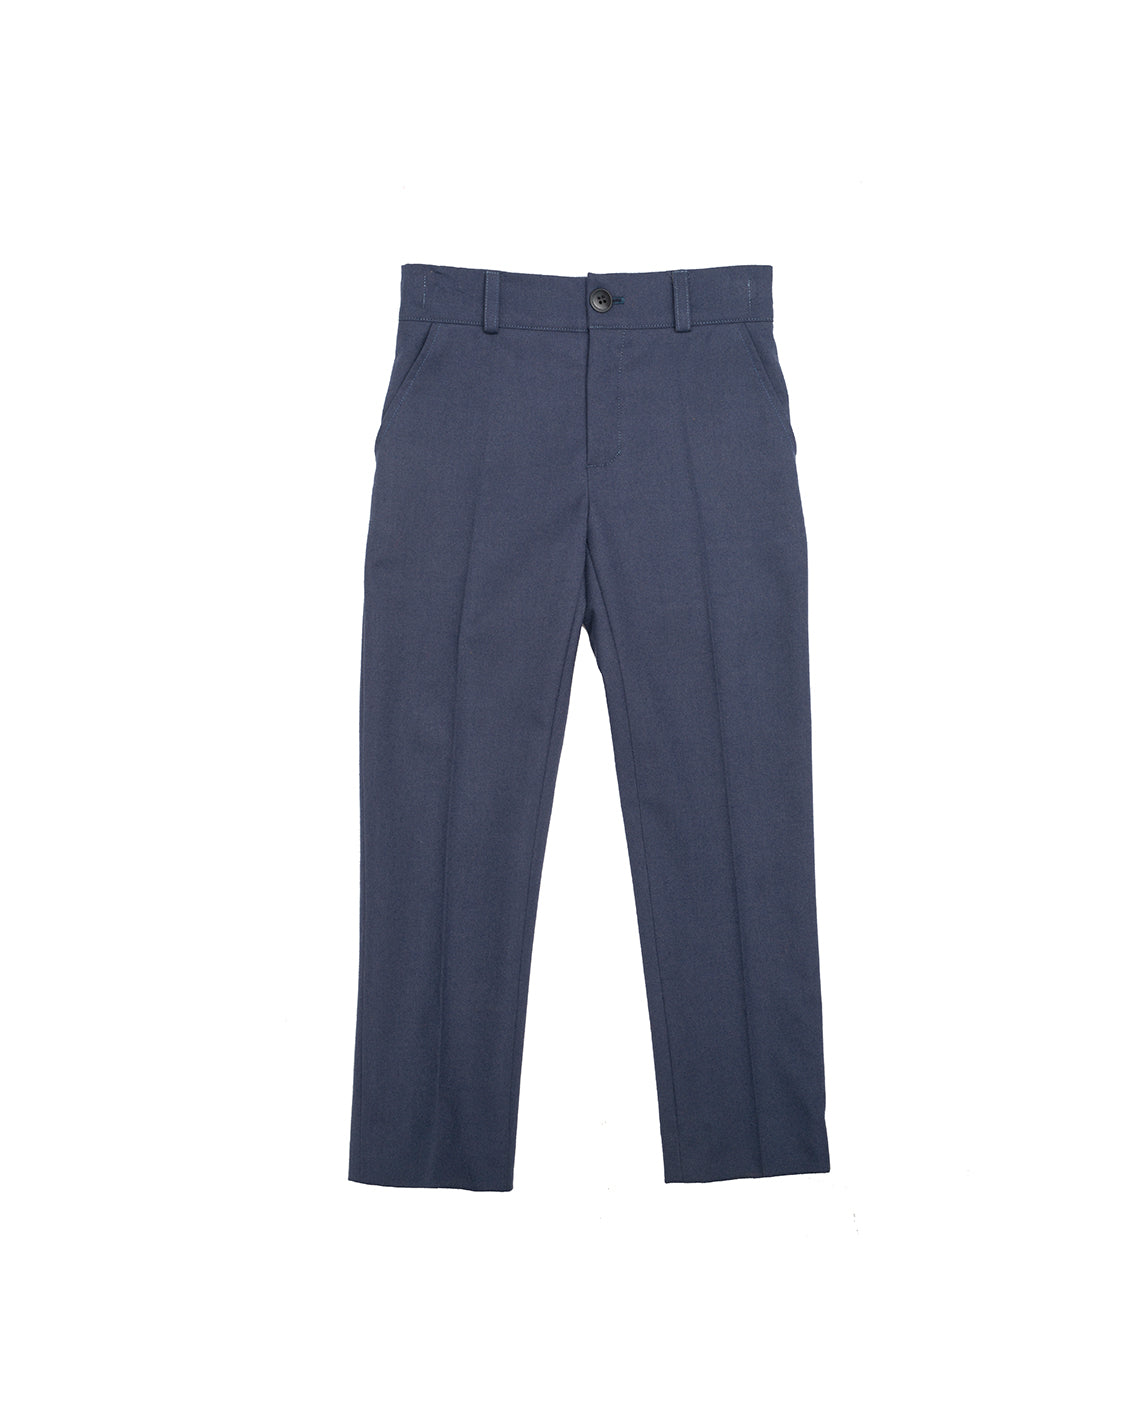 Paade Mode Ash Suit Pants - Ladida